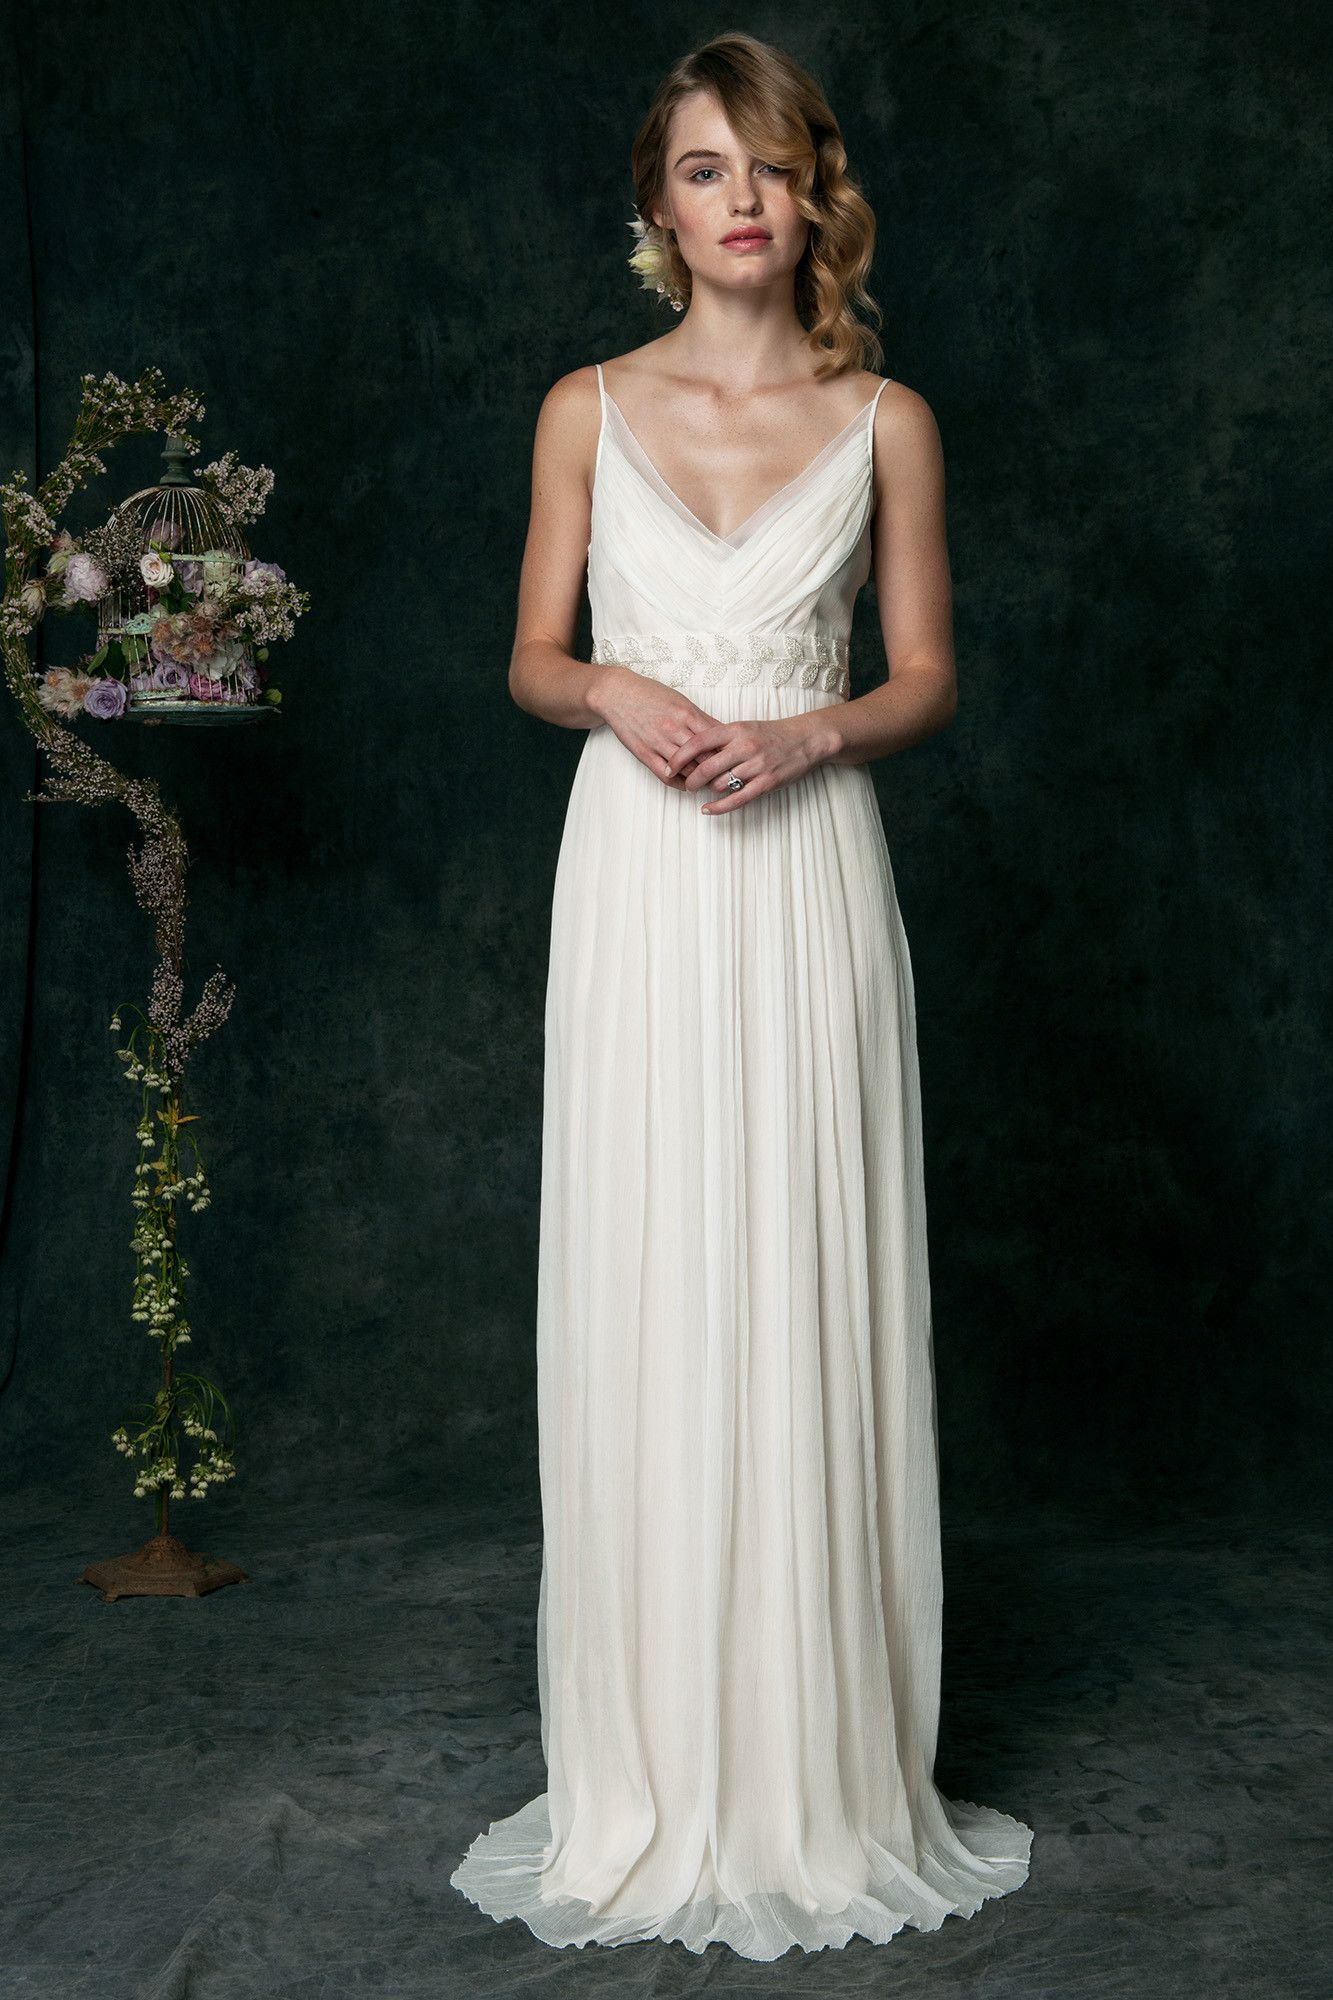 Hb ethereal romantic and wedding dress